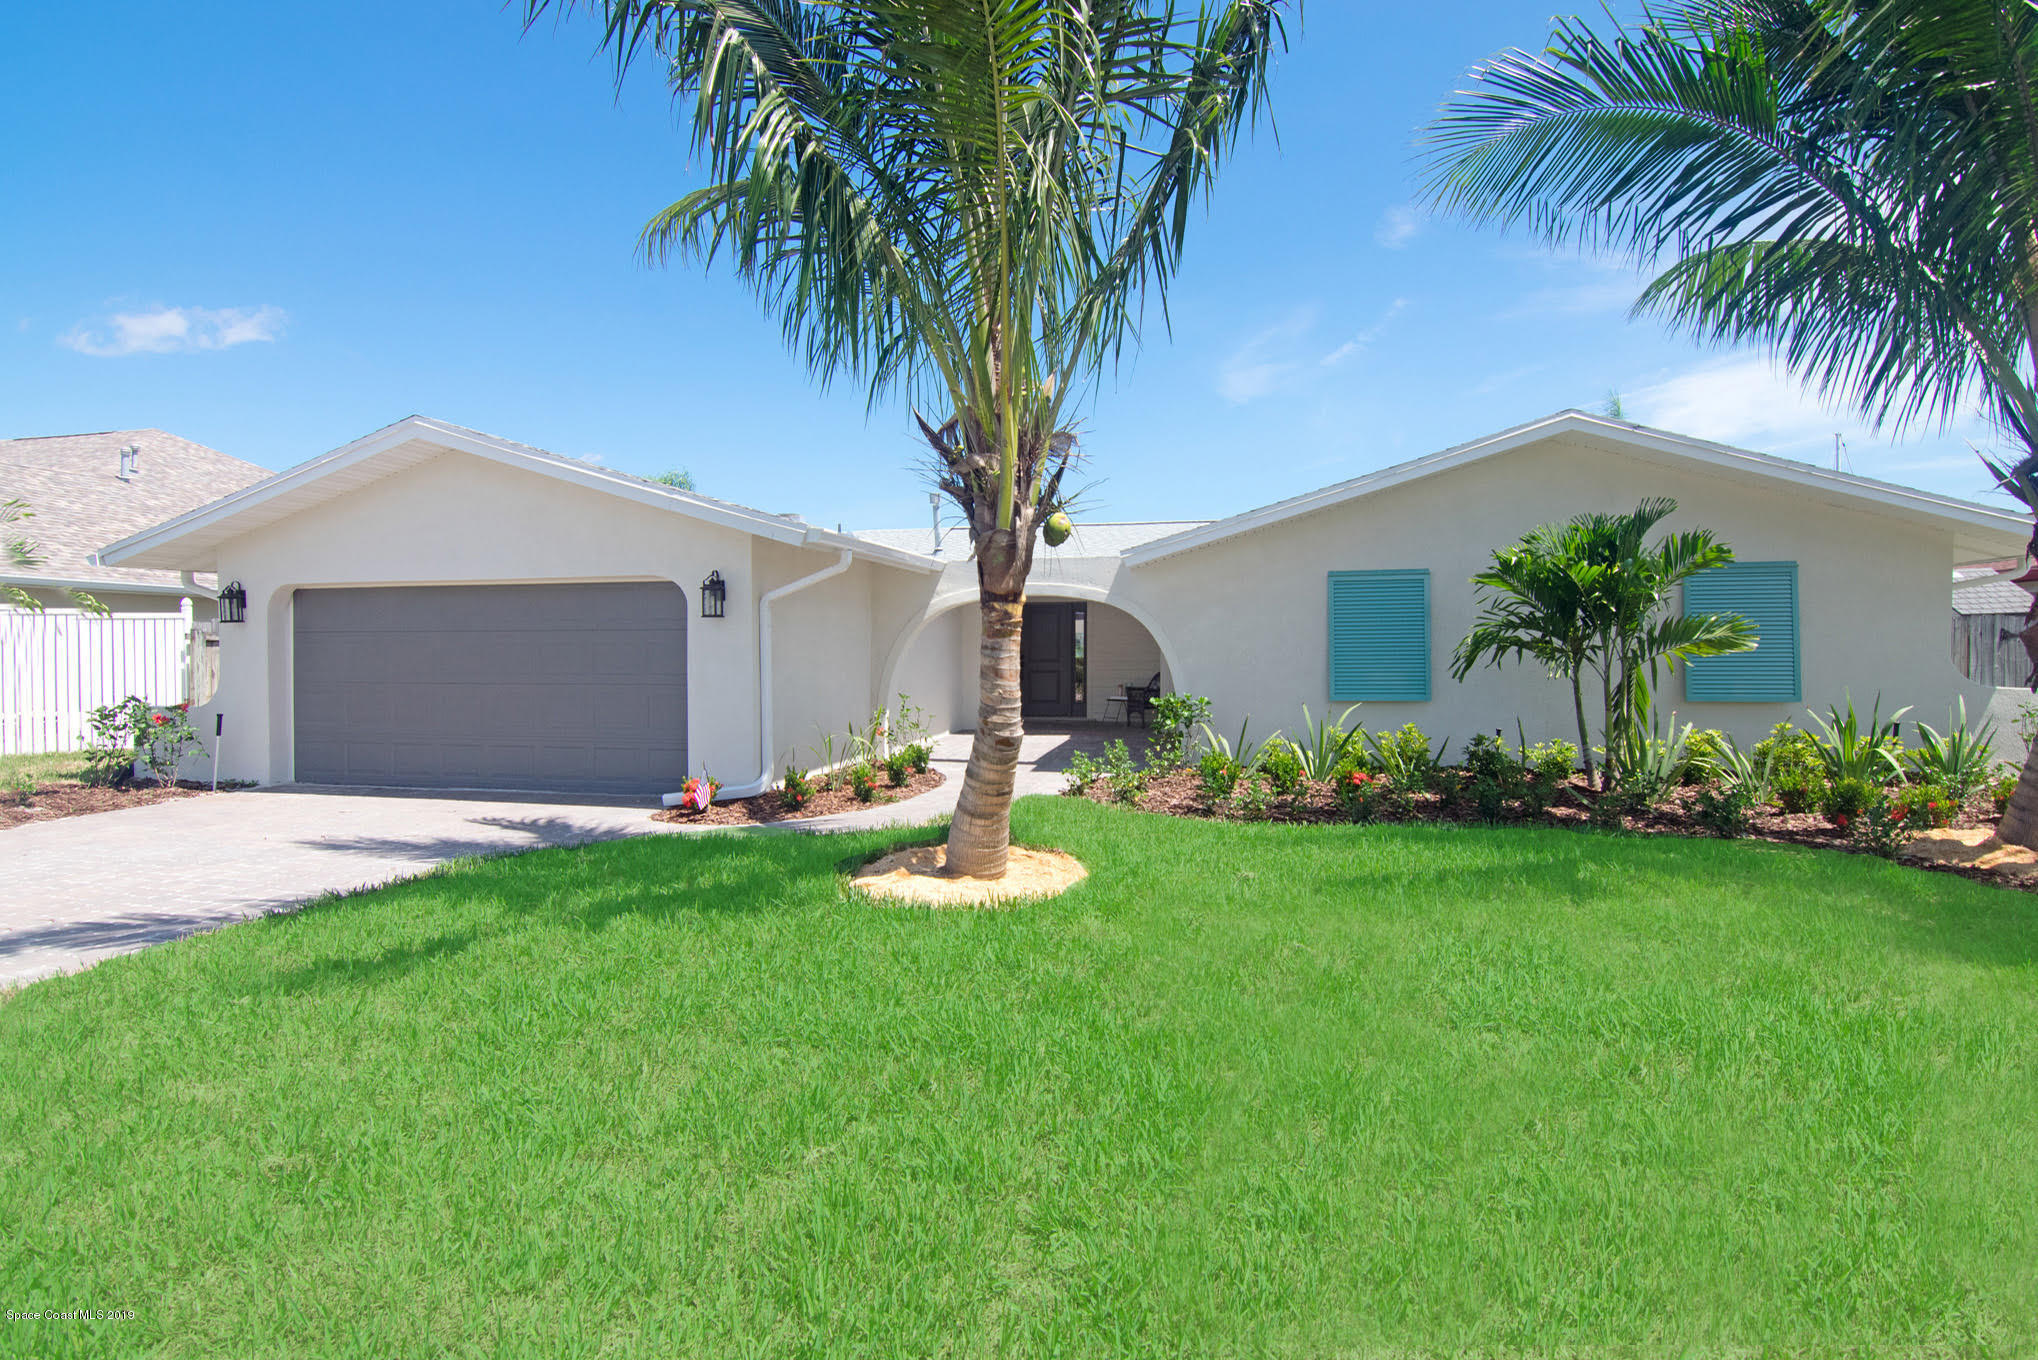 Single Family Homes for Sale at 431 Port Royal Satellite Beach, Florida 32937 United States